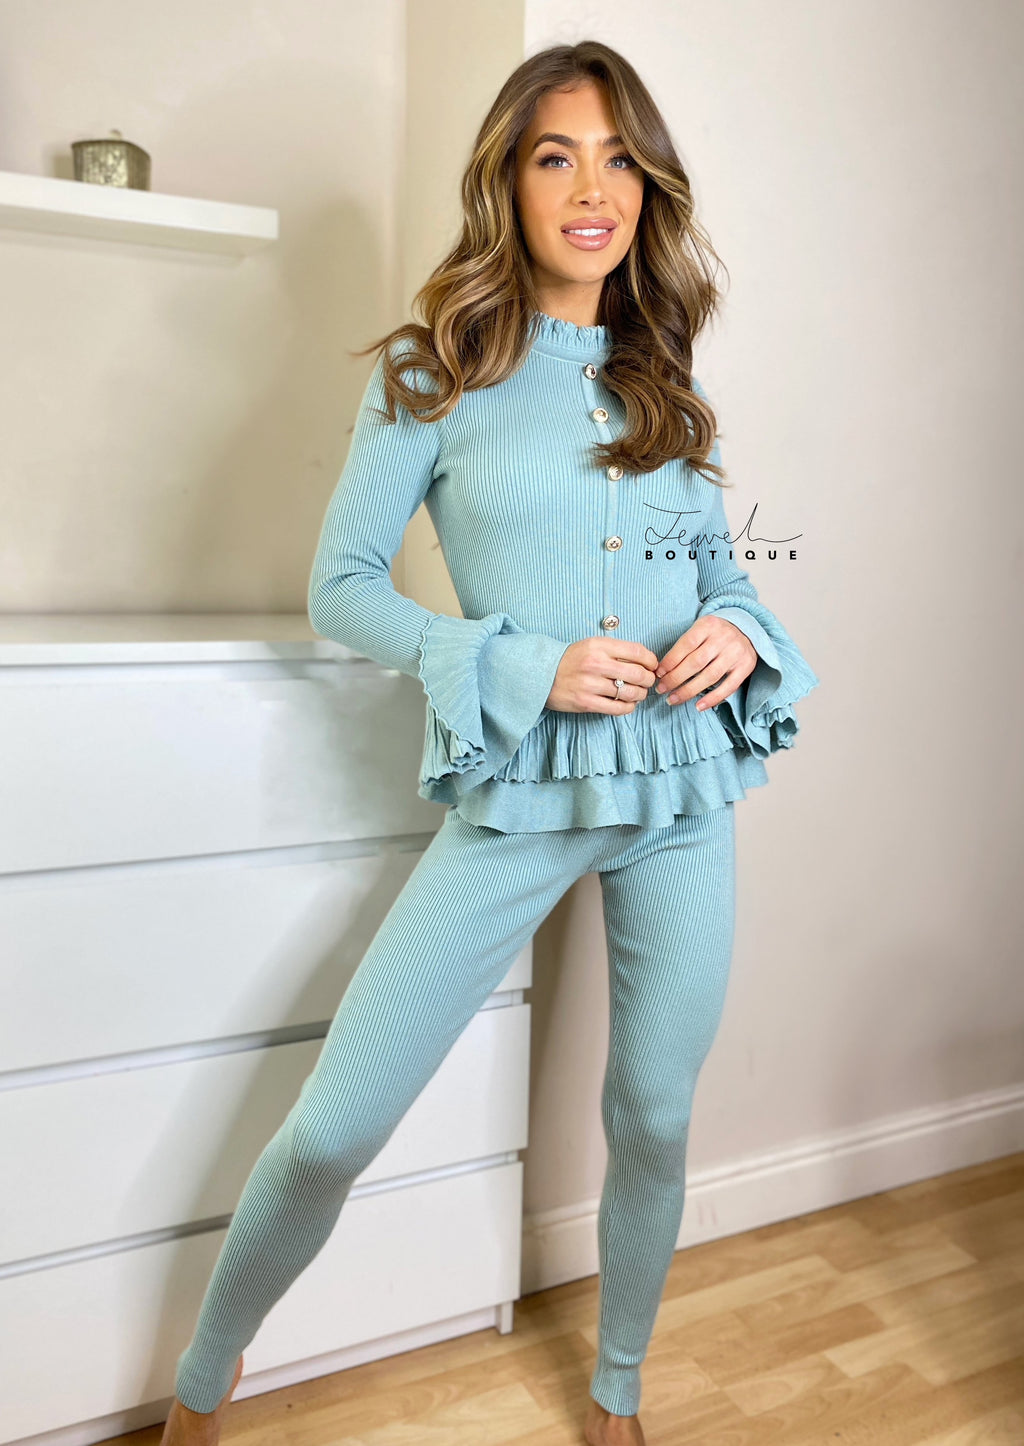 Women's mint green loungewear set with frill and gold button detail